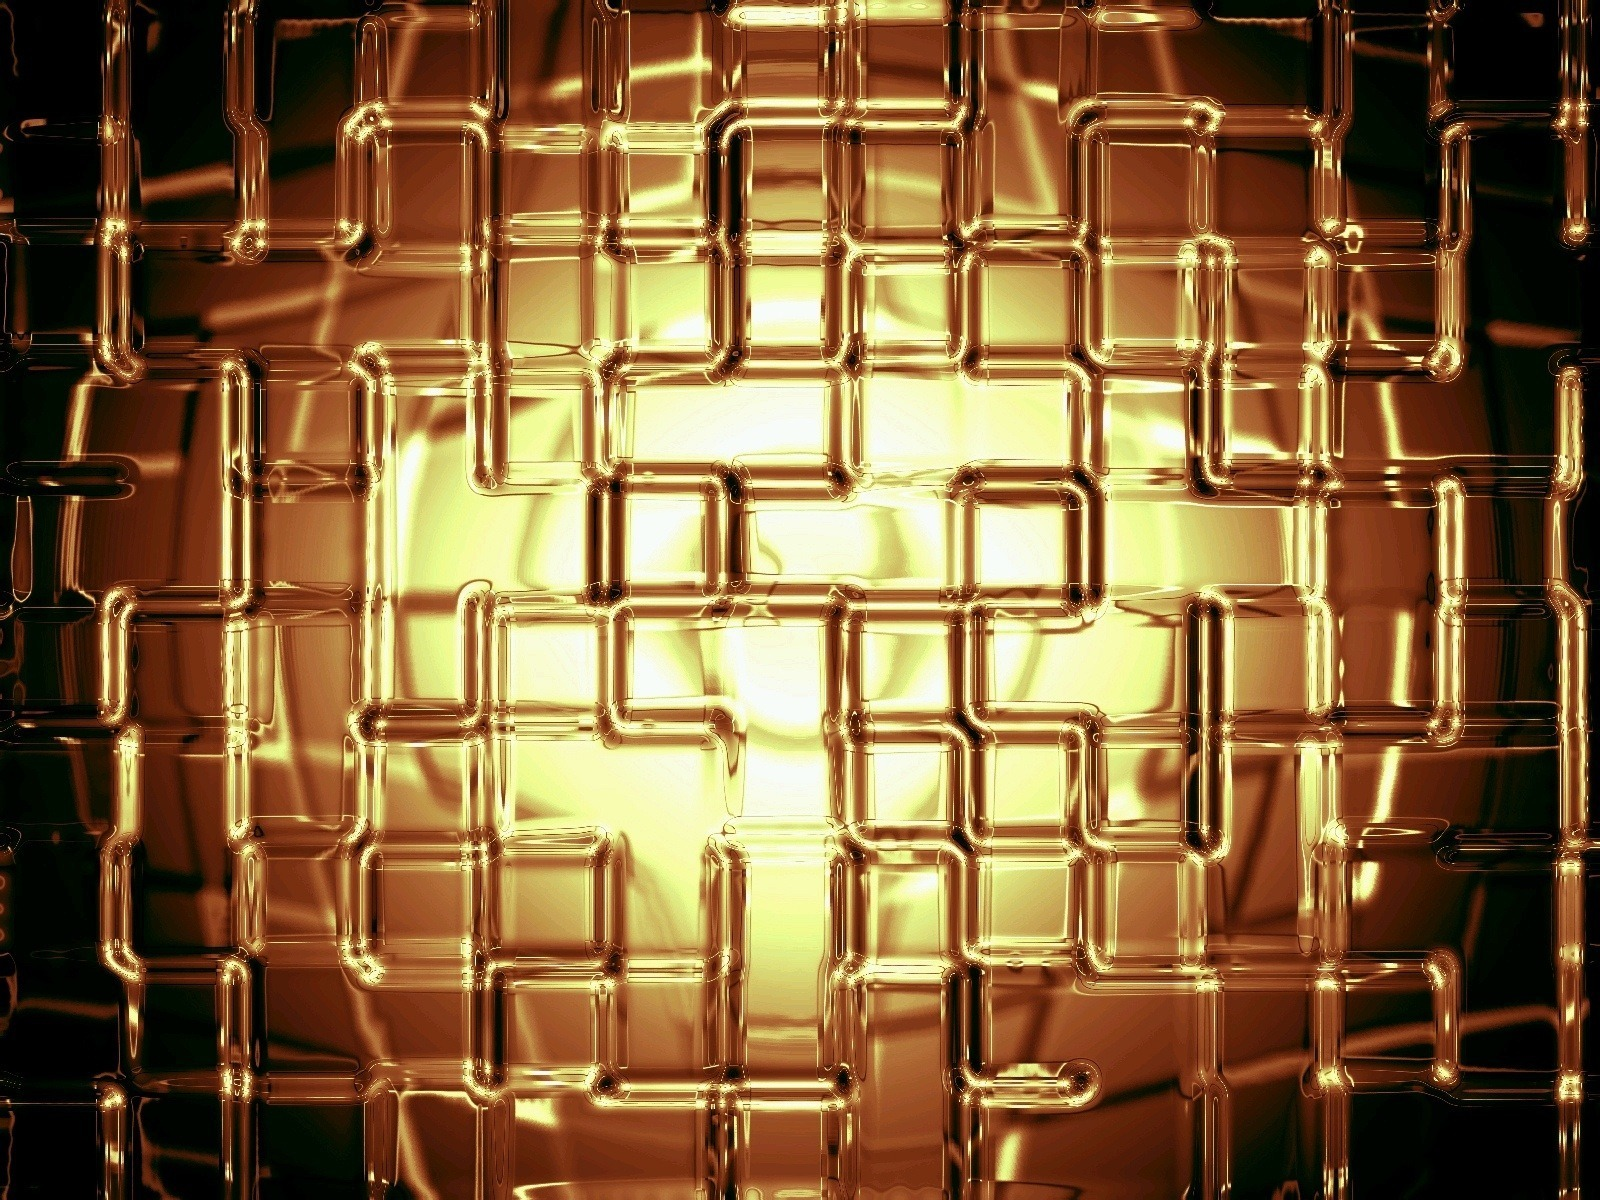 Gold Wall Wallpaper Abstract 3D Wallpapers In Jpg Format For Free